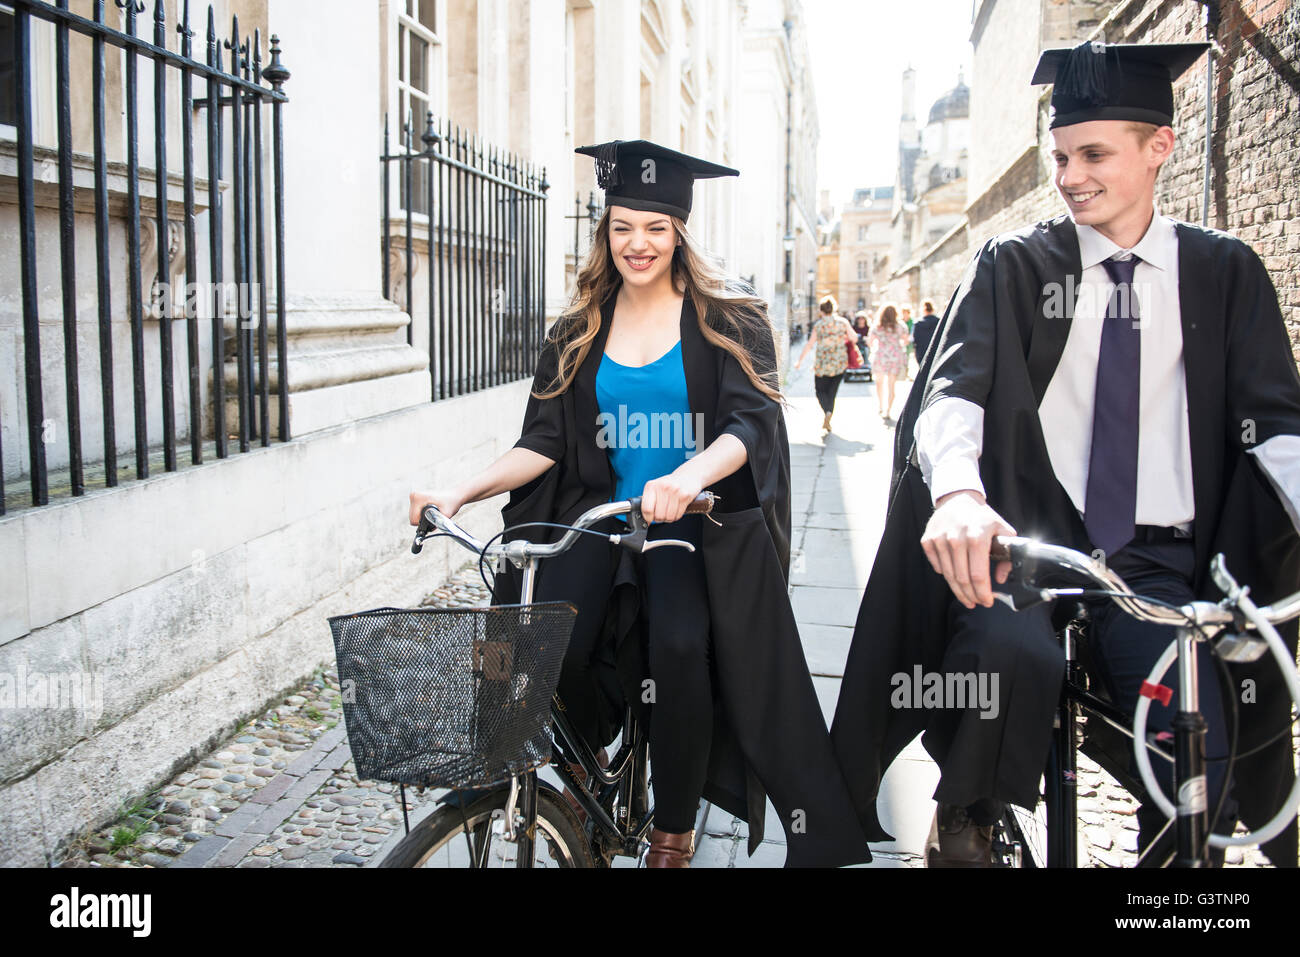 Two young students in graduation gowns cycling through the grounds of Cambridge University. - Stock Image